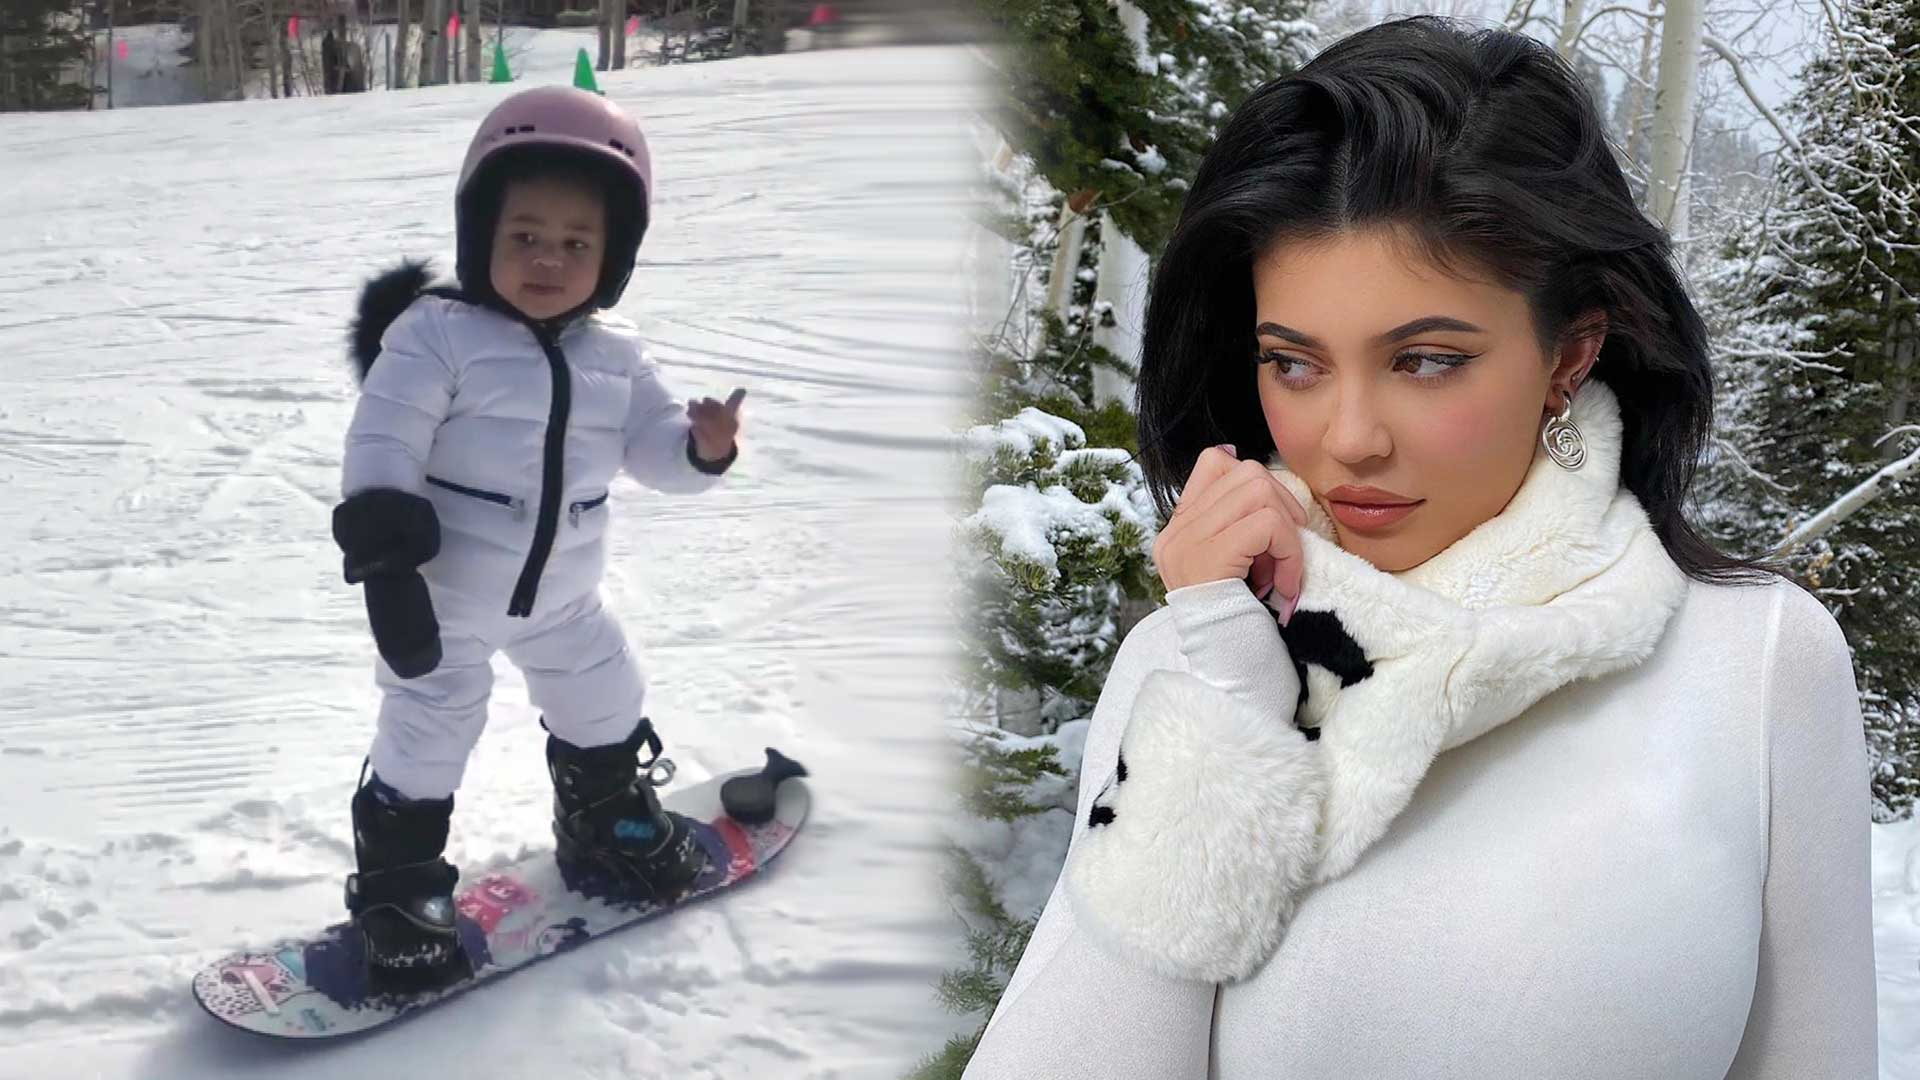 Kylie Jenner's Daughter Stormi Is Already Snowboarding at 22 Months -- Watch Her Hit the Slopes!